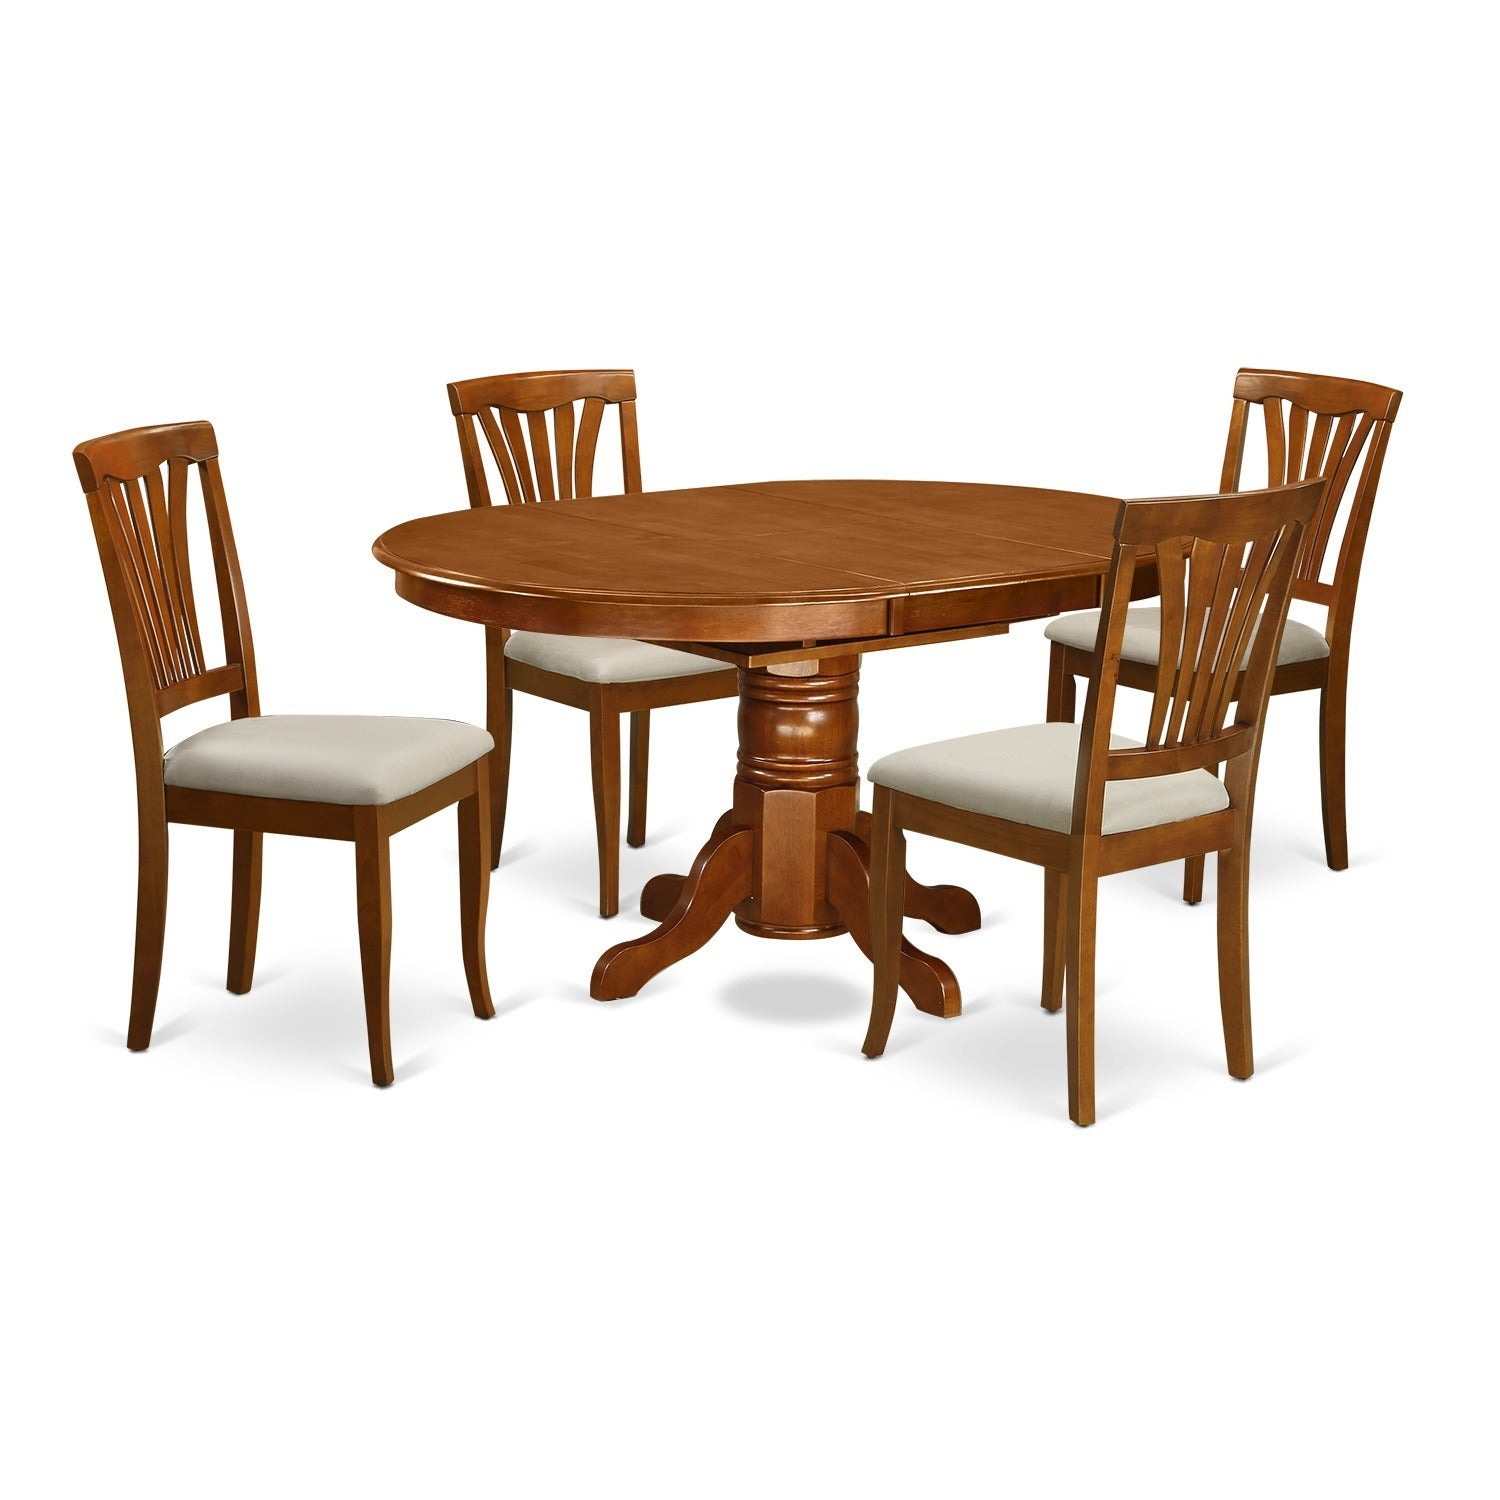 Shop 5 piece Oval Dinette Table with Leaf